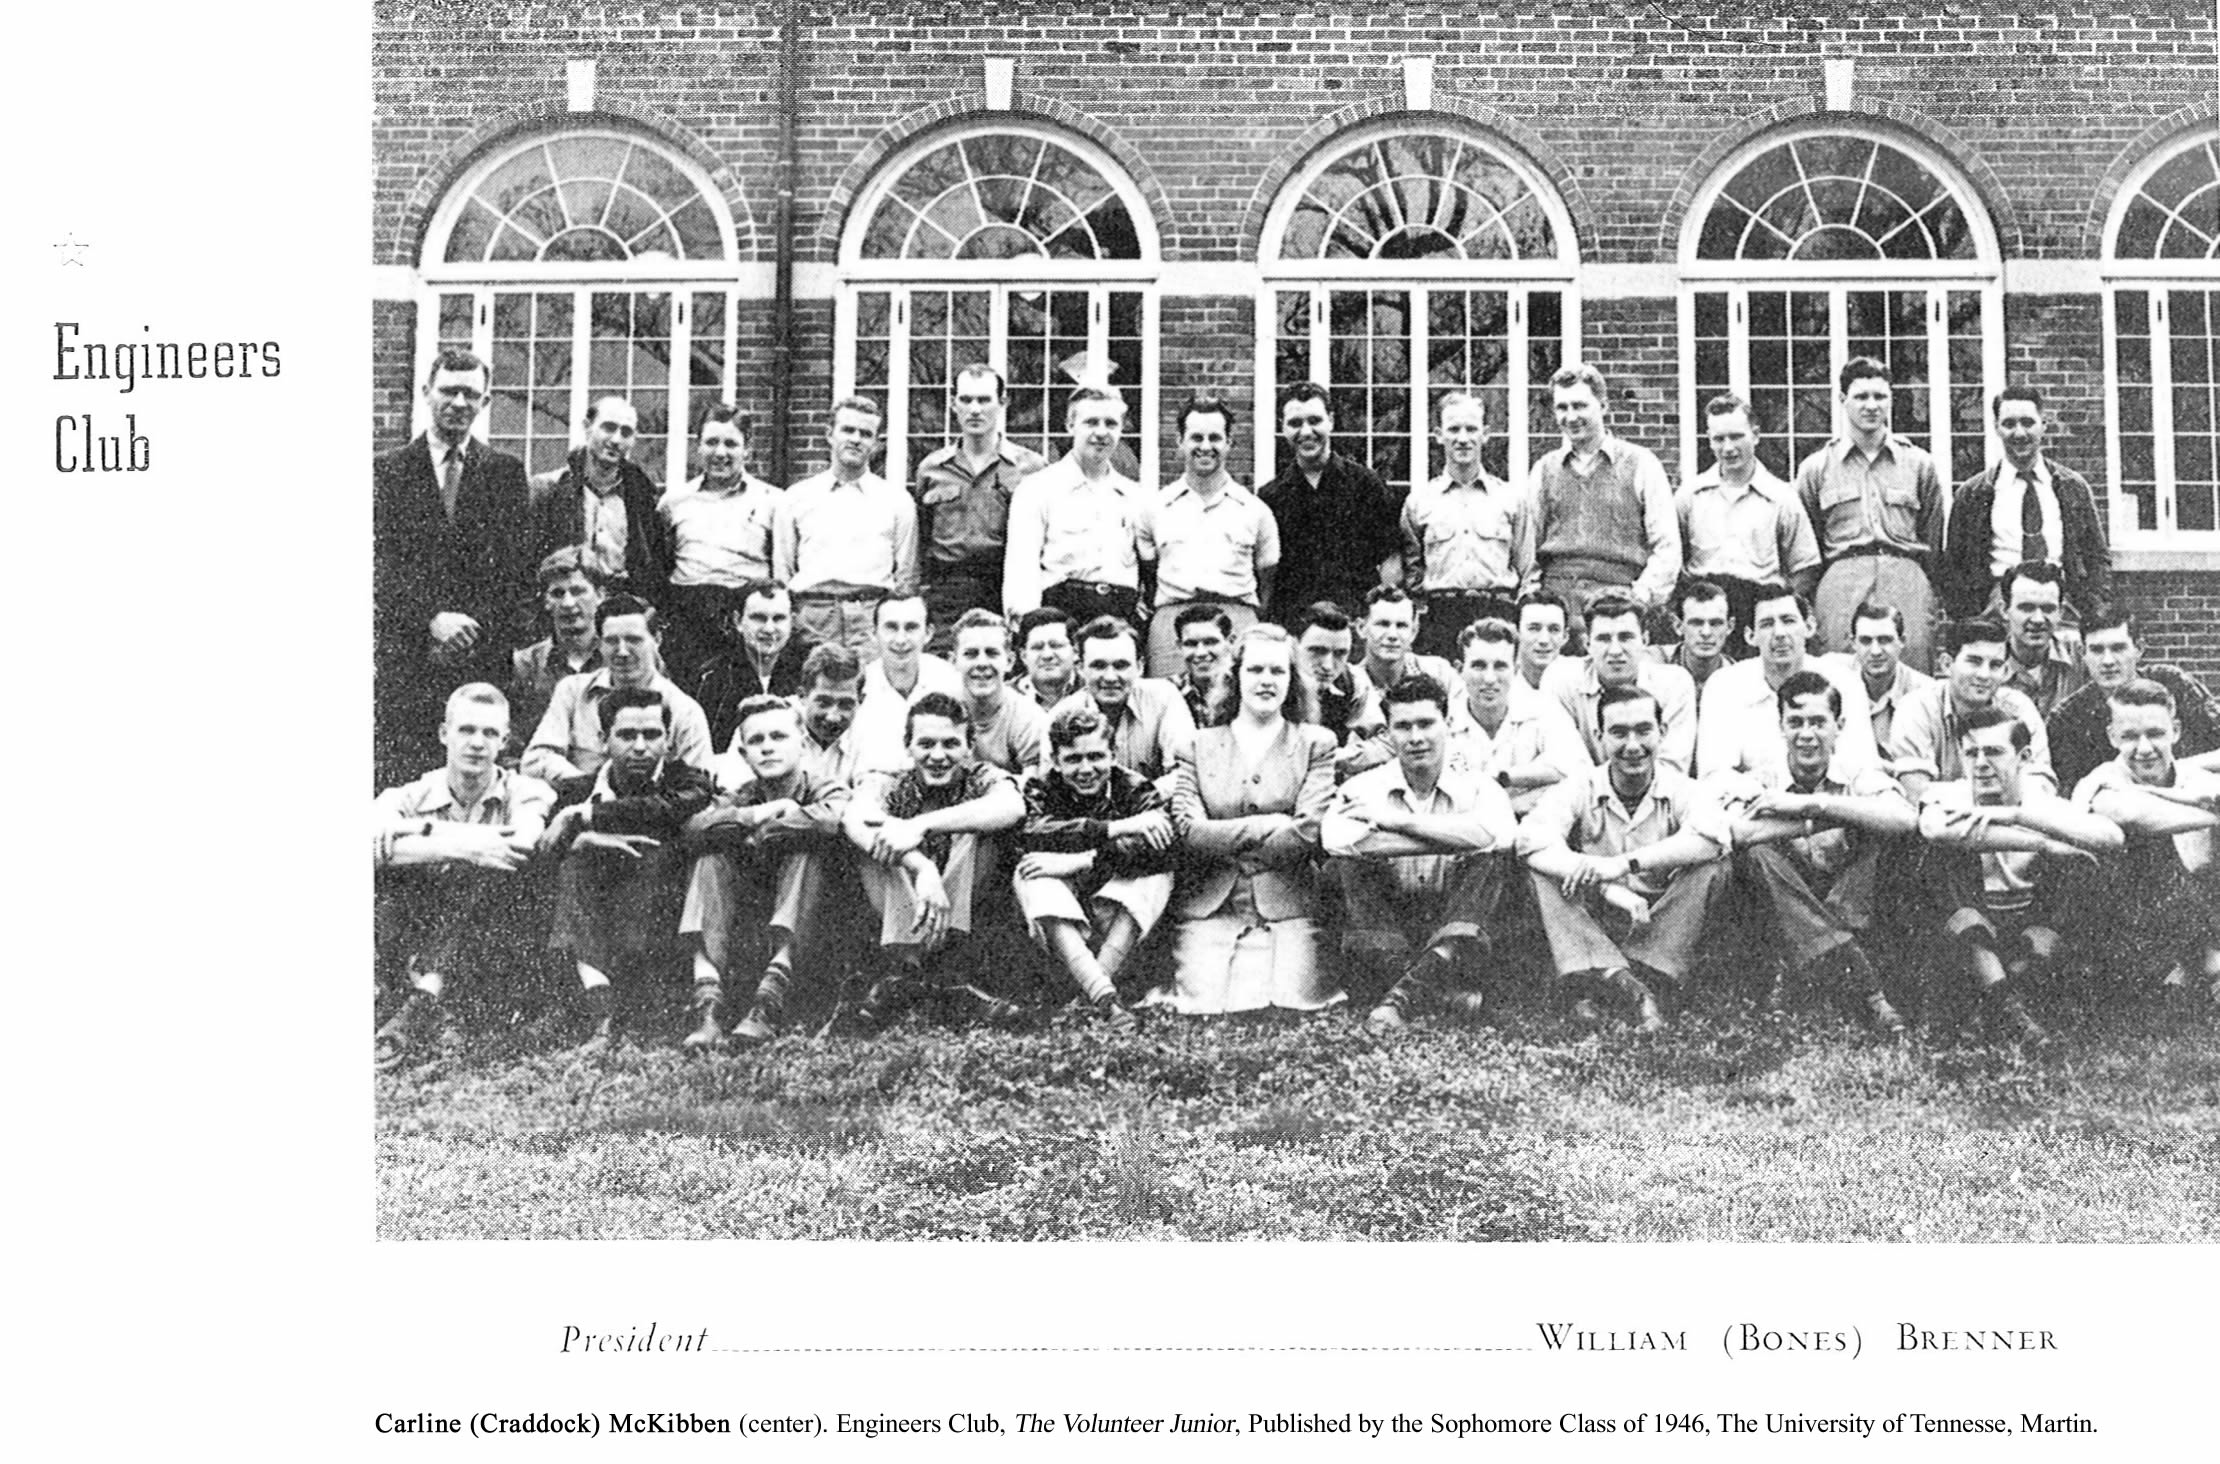 University of Tennessee, Martin, Engineer's Club, 1945-46, First Female Member, Carline Craddock McKibben (front and center). Source: Volunteer Junior, p. 7